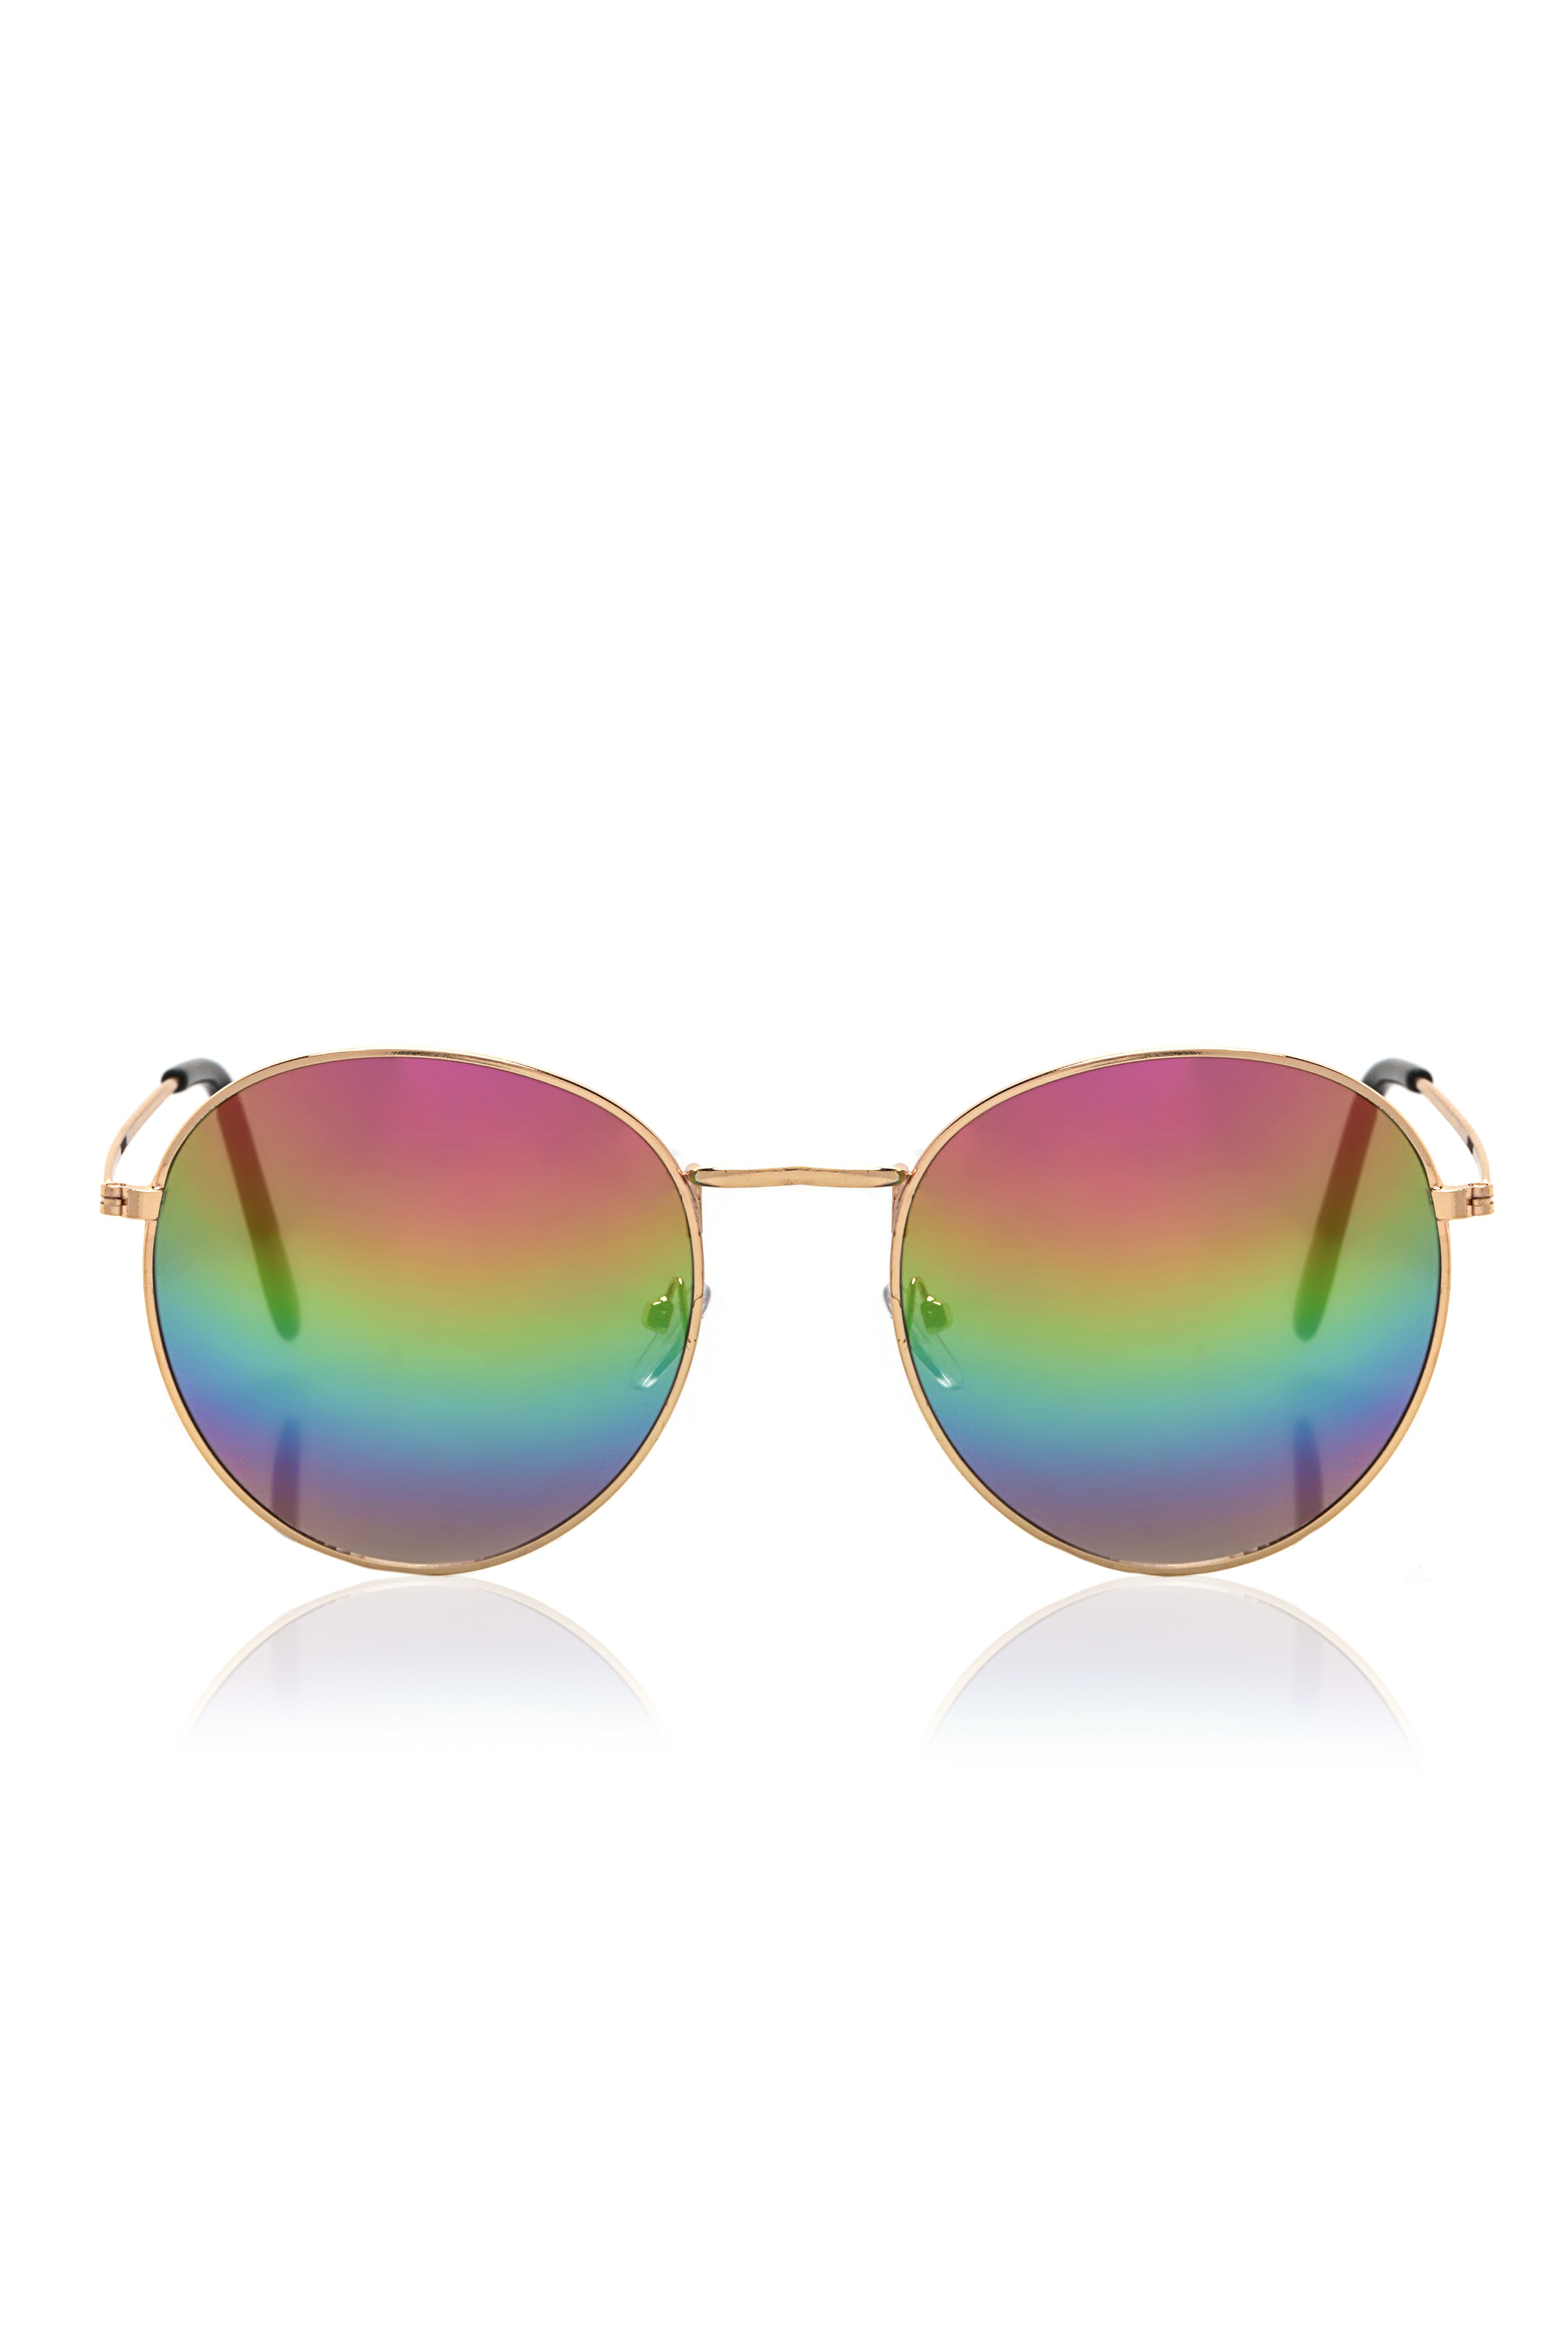 Vision Sunglasses Gold Psychedelic Sunglasses Psychedelic Vision SzVpMU